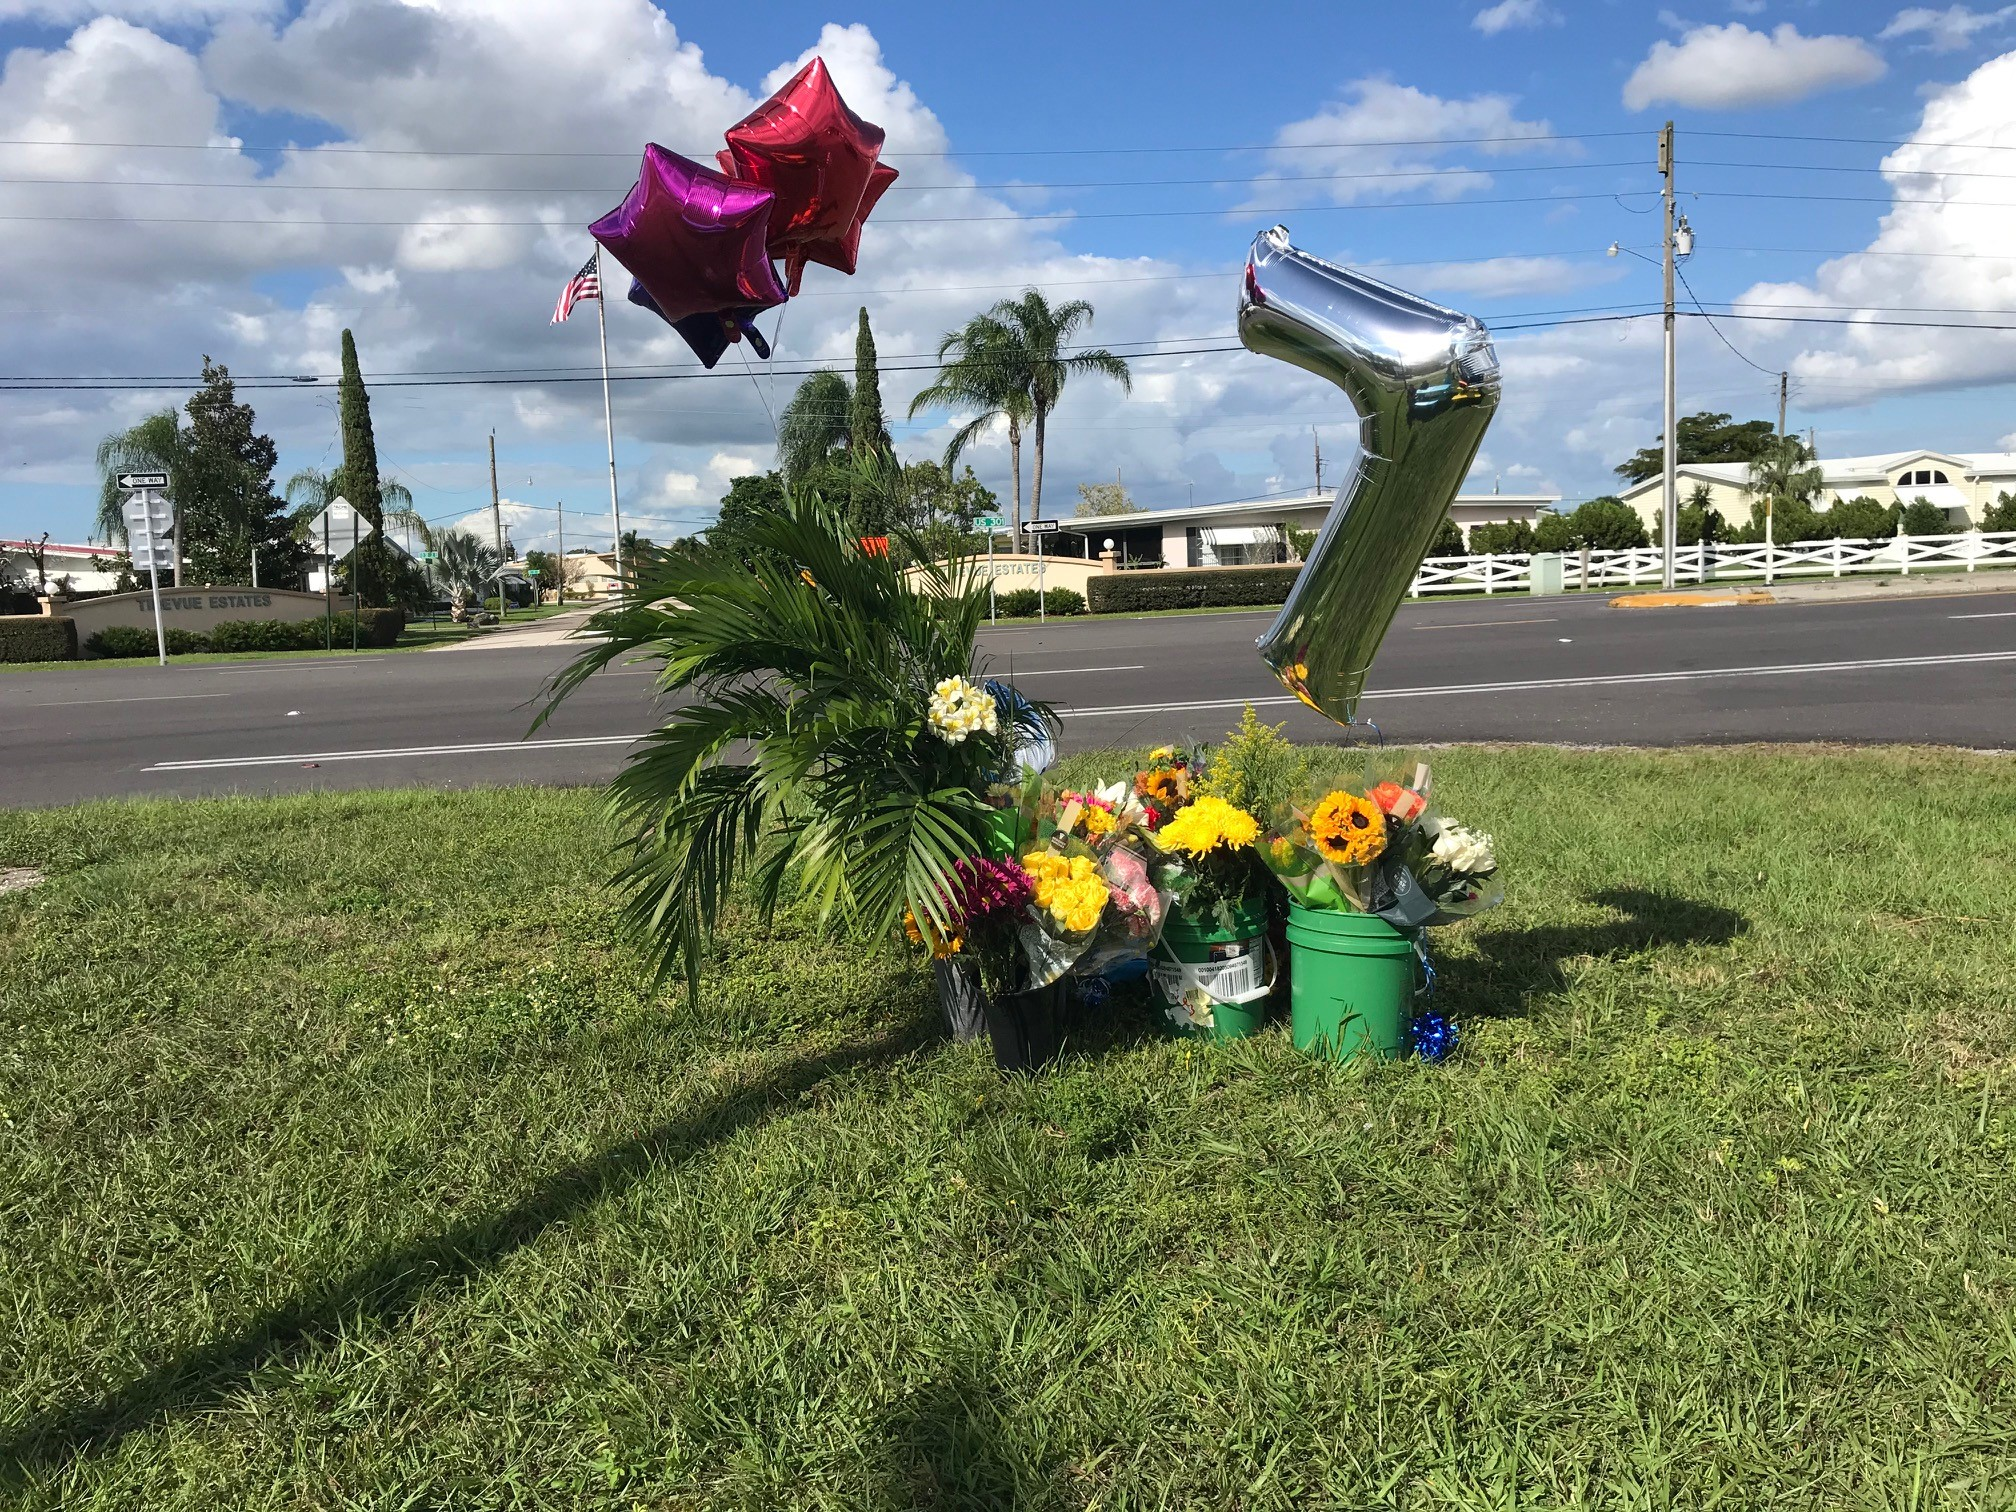 Beloved student-athlete in killed in Florida motorcycle crash, driver facing DUI manslaughter charge